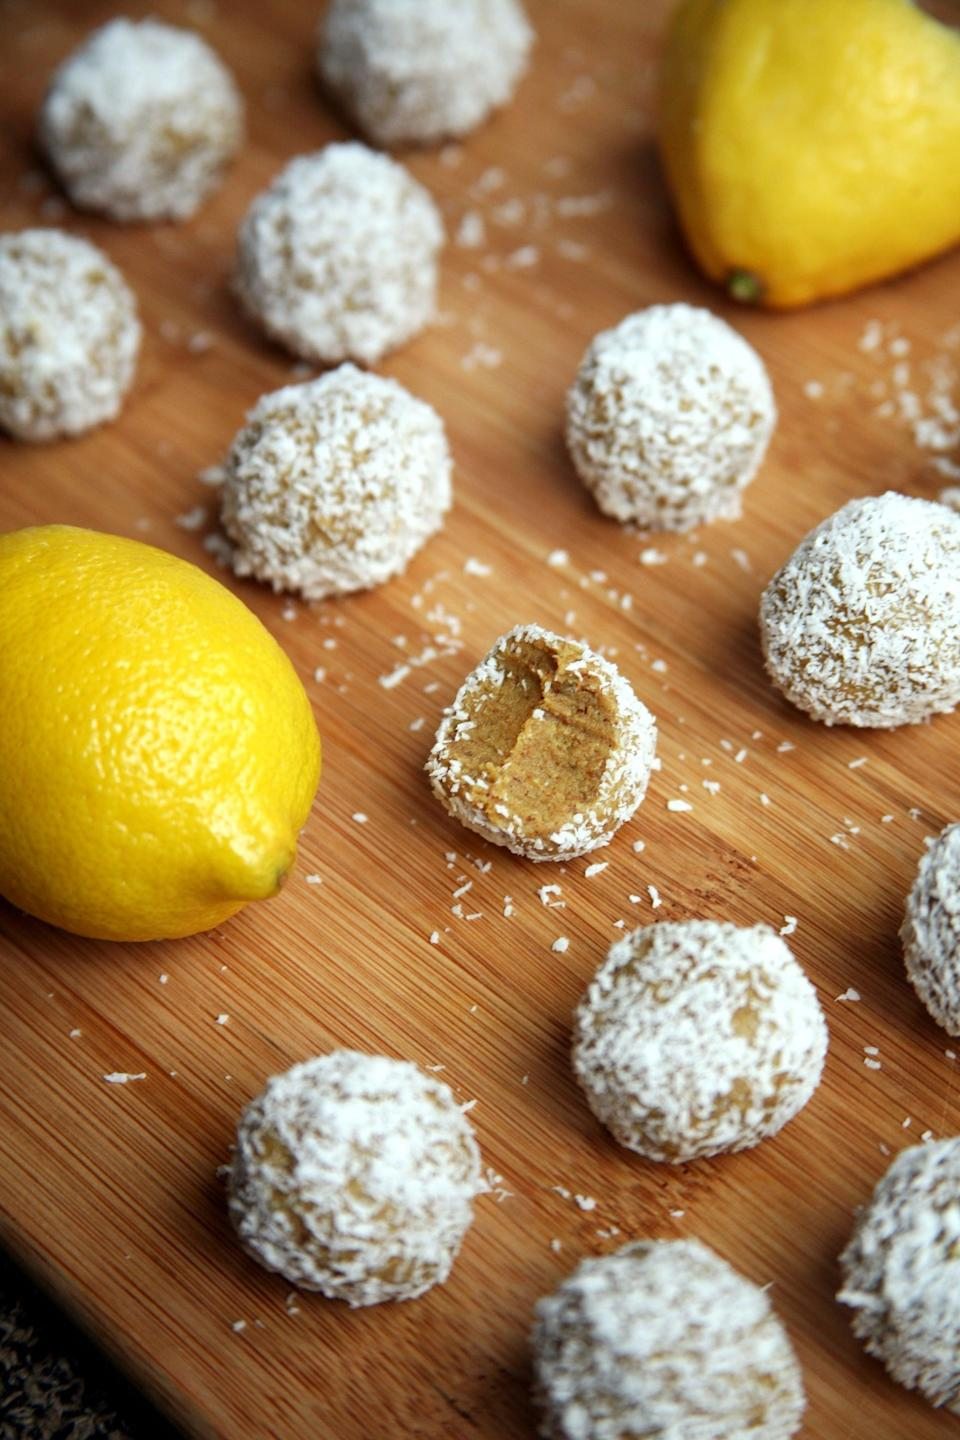 "<p>When hunger strikes and you want to grab the quickest thing you can, make sure you have some pre-made healthy snacks on hand like <a href=""https://www.popsugar.com/fitness/Lemon-Coconut-Protein-Balls-41160578"" class=""link rapid-noclick-resp"" rel=""nofollow noopener"" target=""_blank"" data-ylk=""slk:lemon coconut protein balls"">lemon coconut protein balls</a> or <a href=""https://www.popsugar.com/fitness/Pumpkin-Pie-Larabar-Recipe-42741394"" class=""link rapid-noclick-resp"" rel=""nofollow noopener"" target=""_blank"" data-ylk=""slk:pumpkin pie fruit and nut bars"">pumpkin pie fruit and nut bars</a>. Make a batch on the weekend, and keep them in your fridge so you can grab when you're feeling snacky.</p>"